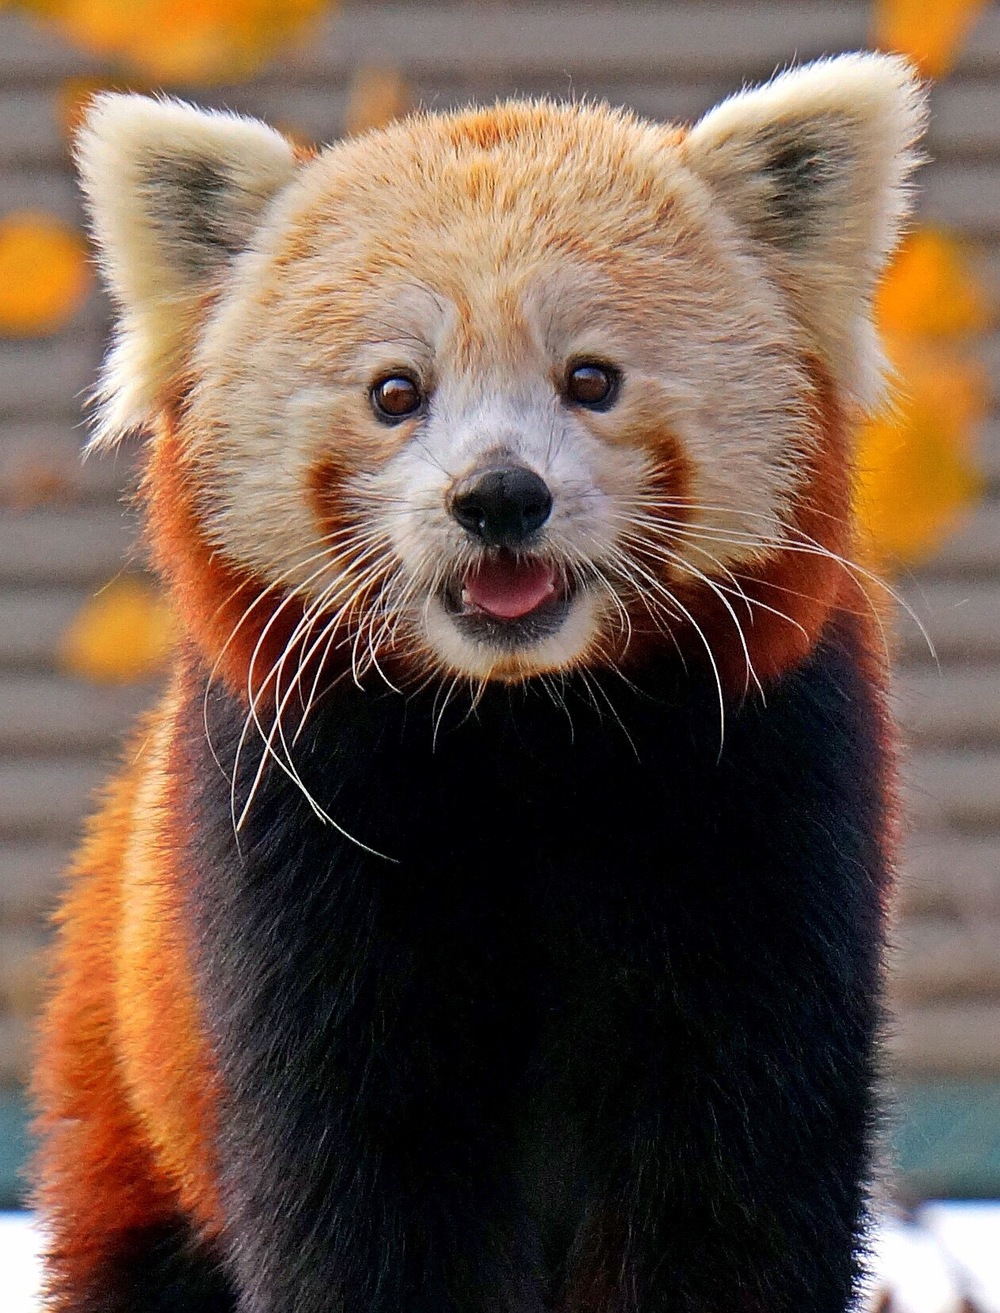 Red Panda Nathan Fischer 2009 Photograph 8.5x11 or custom $75